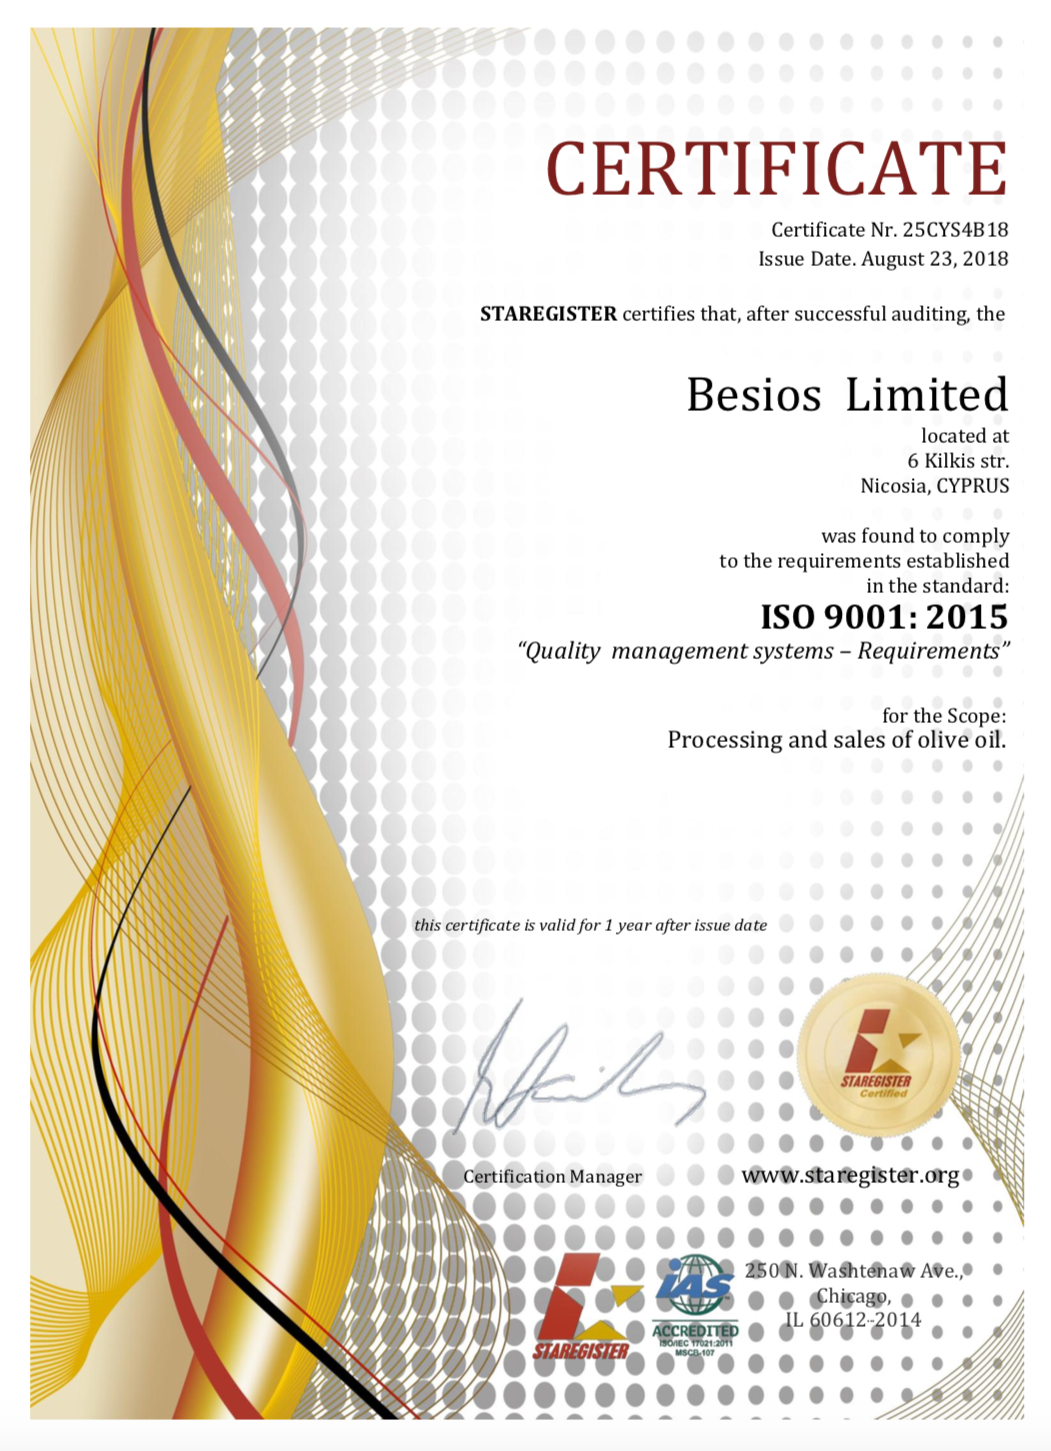 New Quality Management Systems Certification for Besios Limited